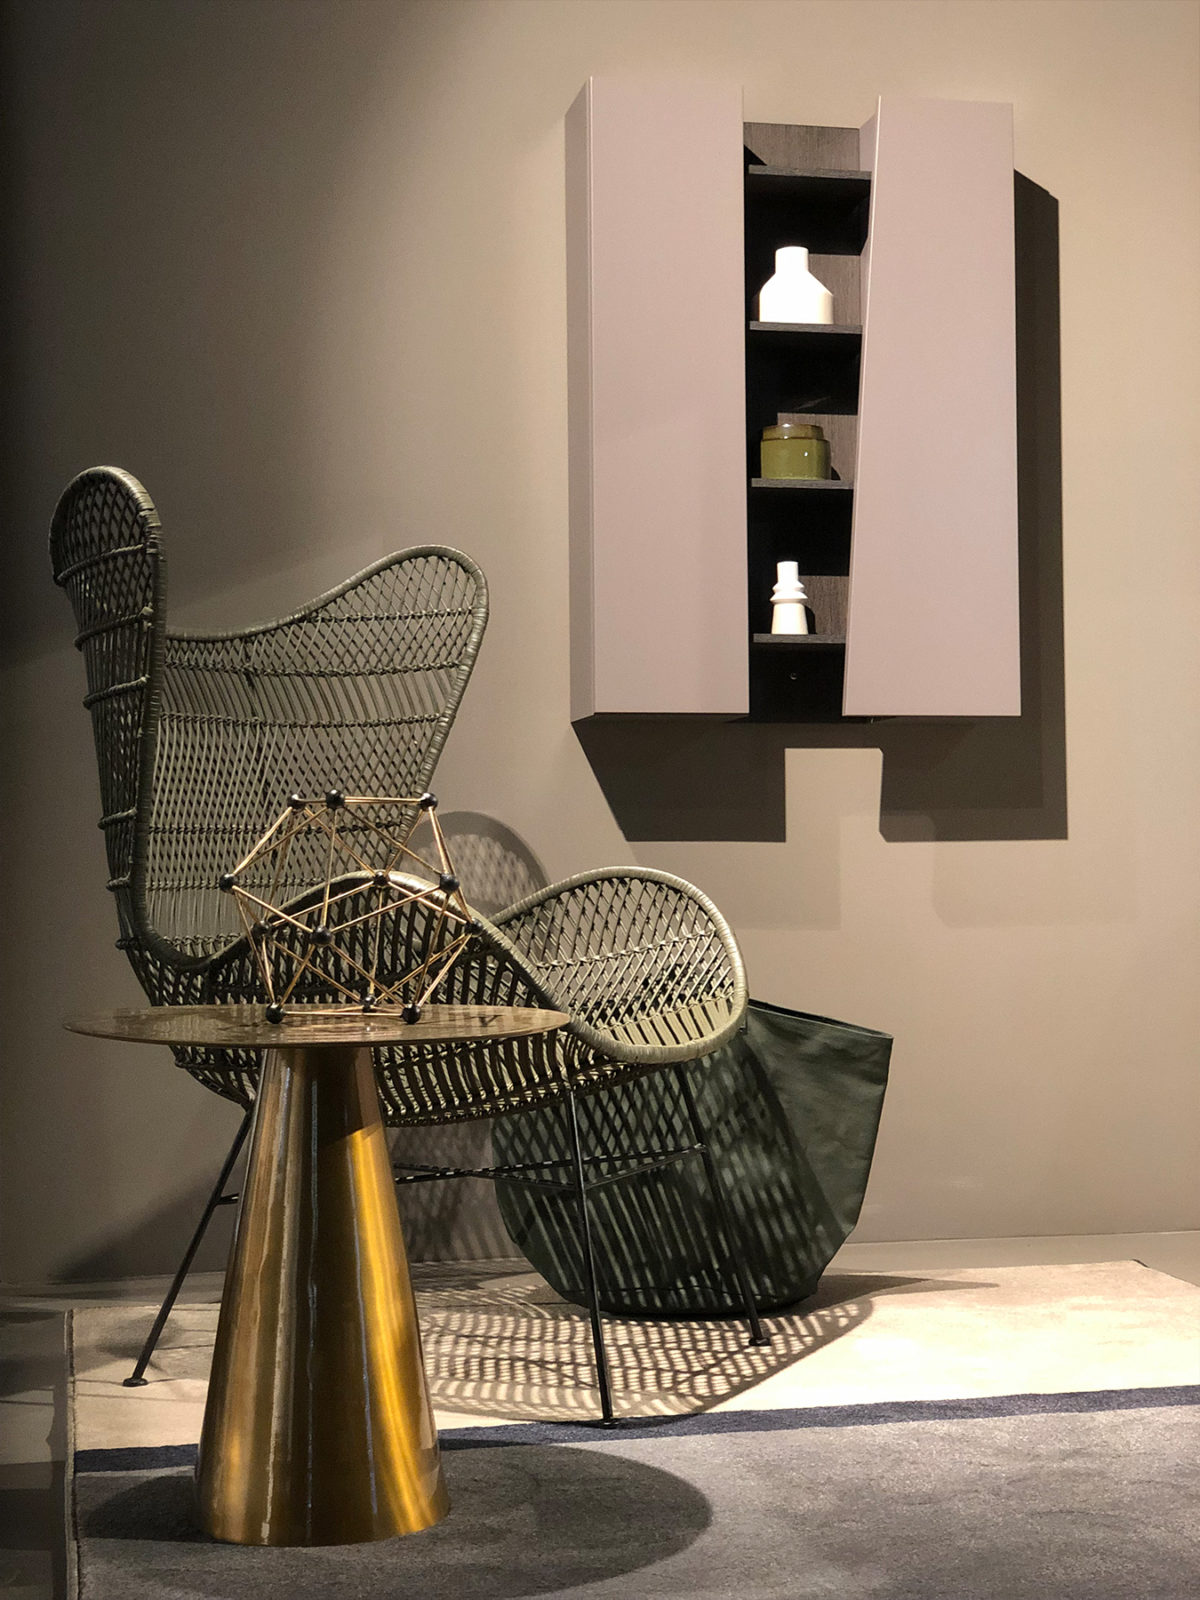 ARTESI-AGHA-ARDECO showroom 2019 8